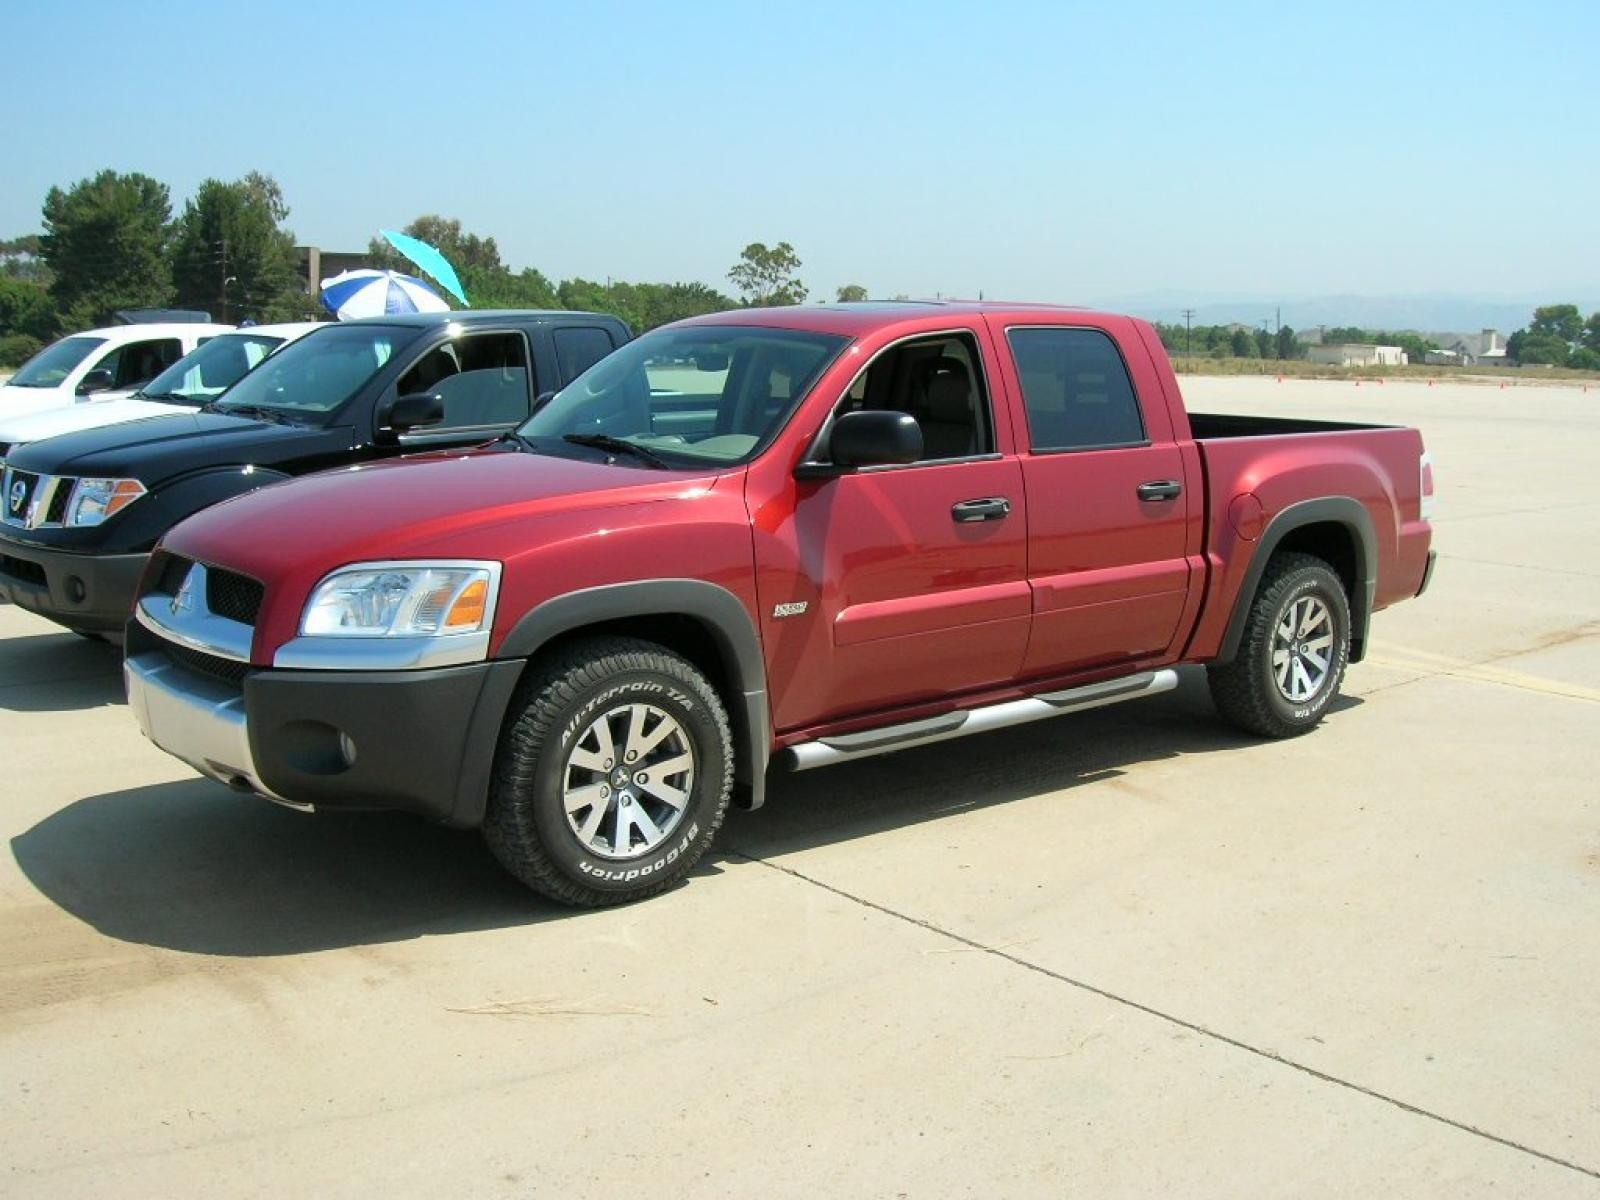 2006 mitsubishi raider information and photos zombiedrive. Black Bedroom Furniture Sets. Home Design Ideas